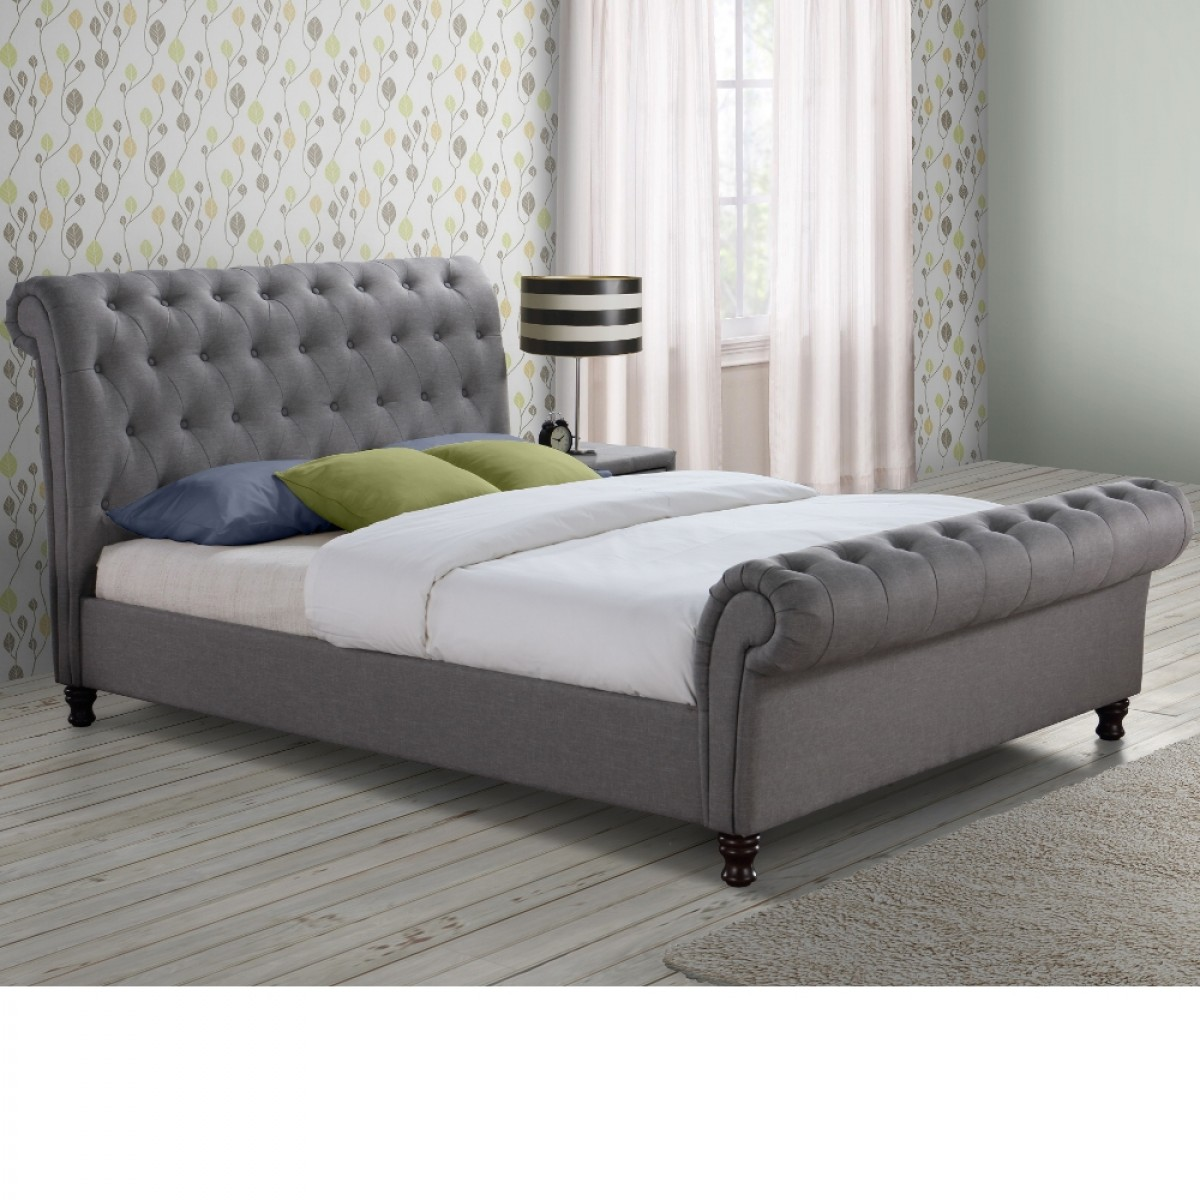 grey upholstered sleigh bed. Grey Upholstered Sleigh Bed E